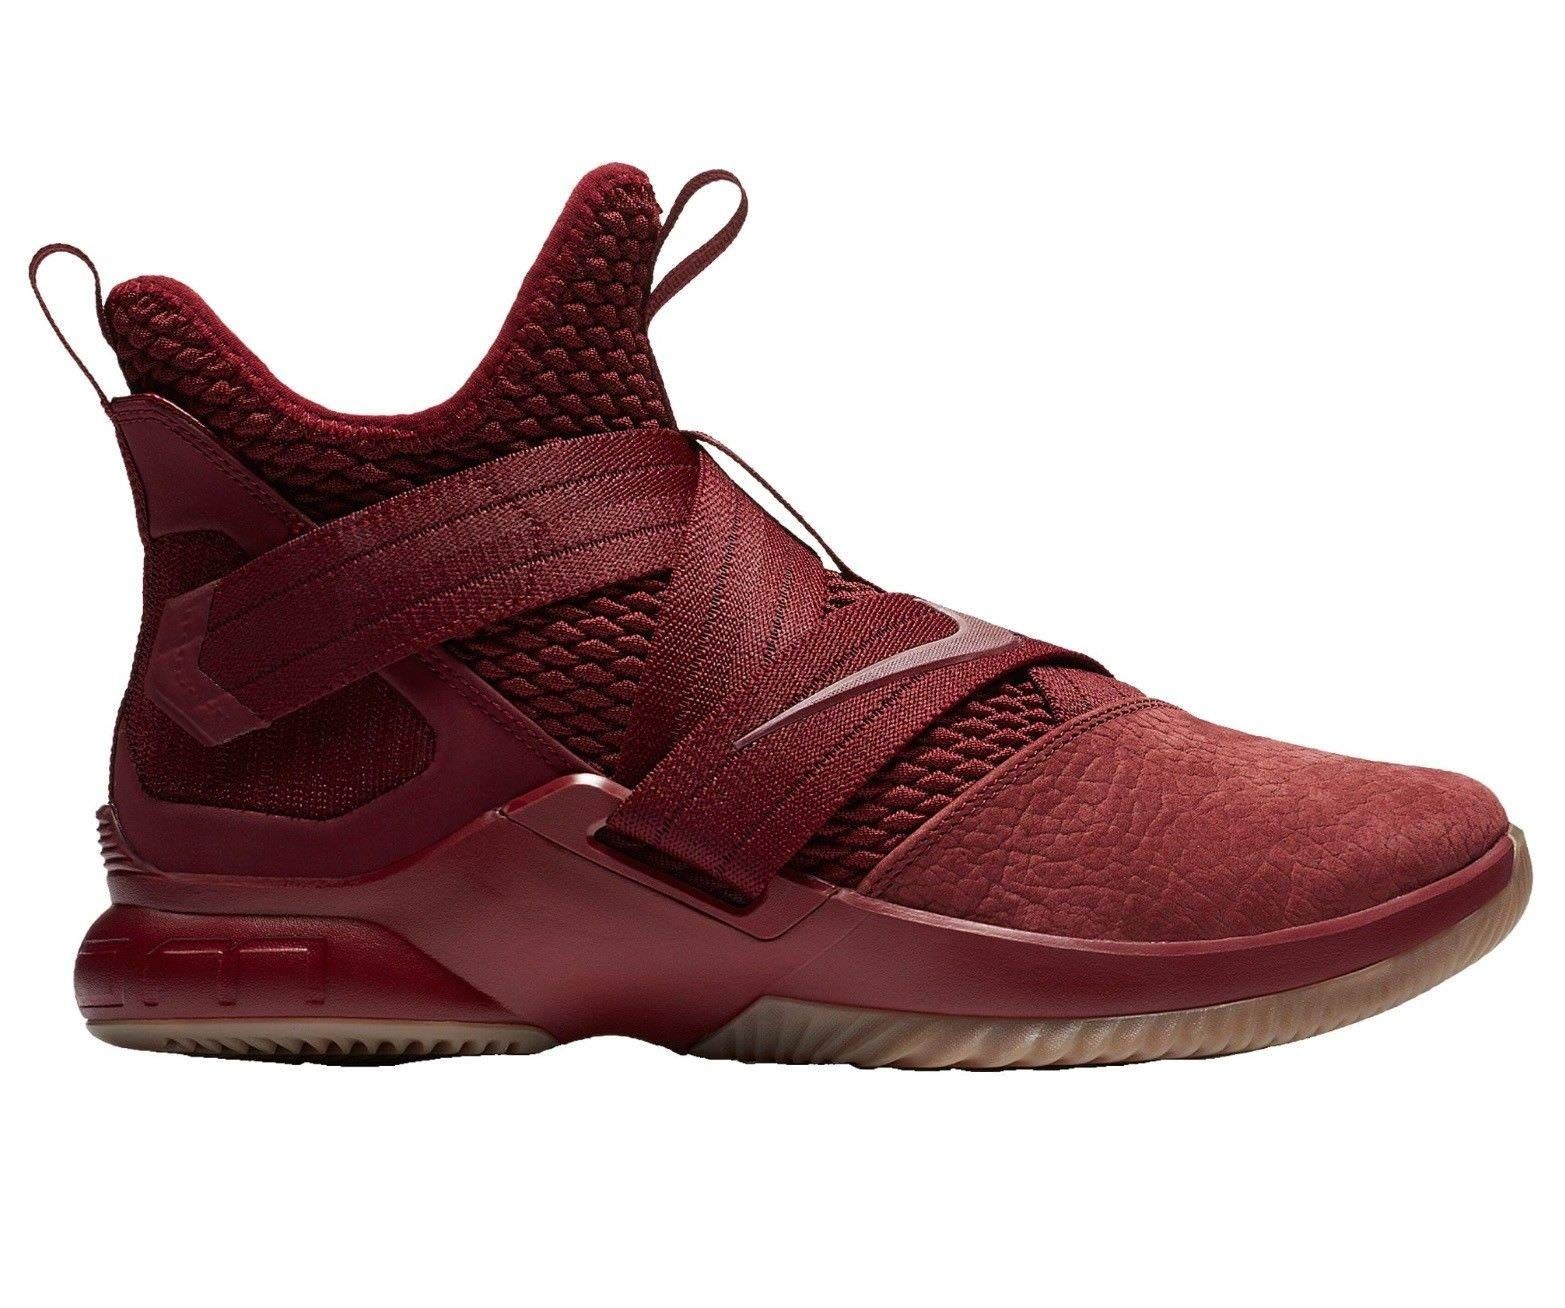 Galleon - NIKE Lebron Soldier 12 SFG Mens Basketball-Shoes AO4054-600 8.5 -  Team RED Team RED-Gum Light Brown f3f5e94ca